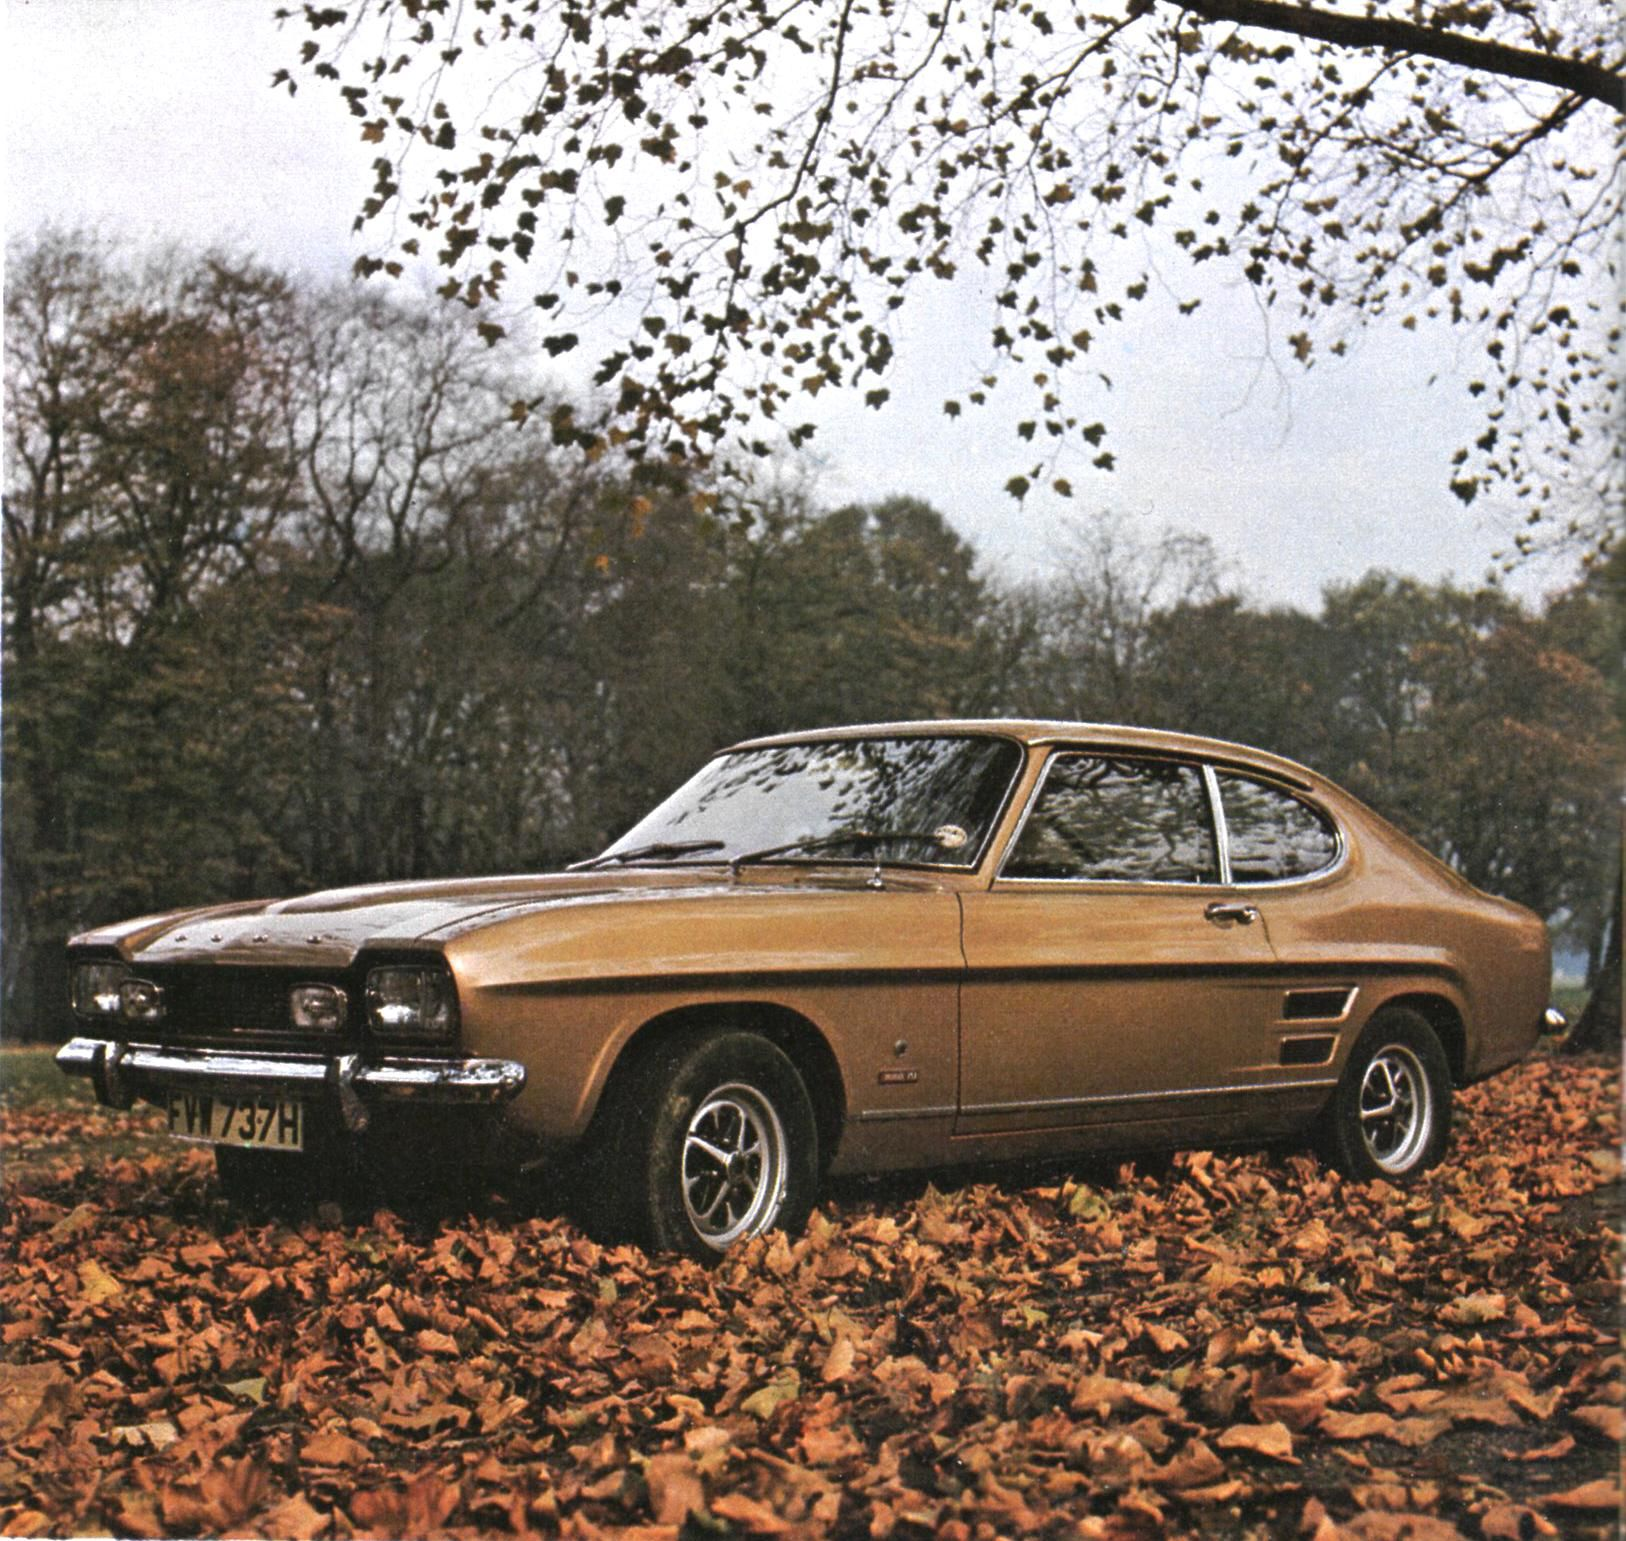 ford capri 3000gt 1969 ford capri 1 1969 73 pinterest ford capri ford and cars. Black Bedroom Furniture Sets. Home Design Ideas